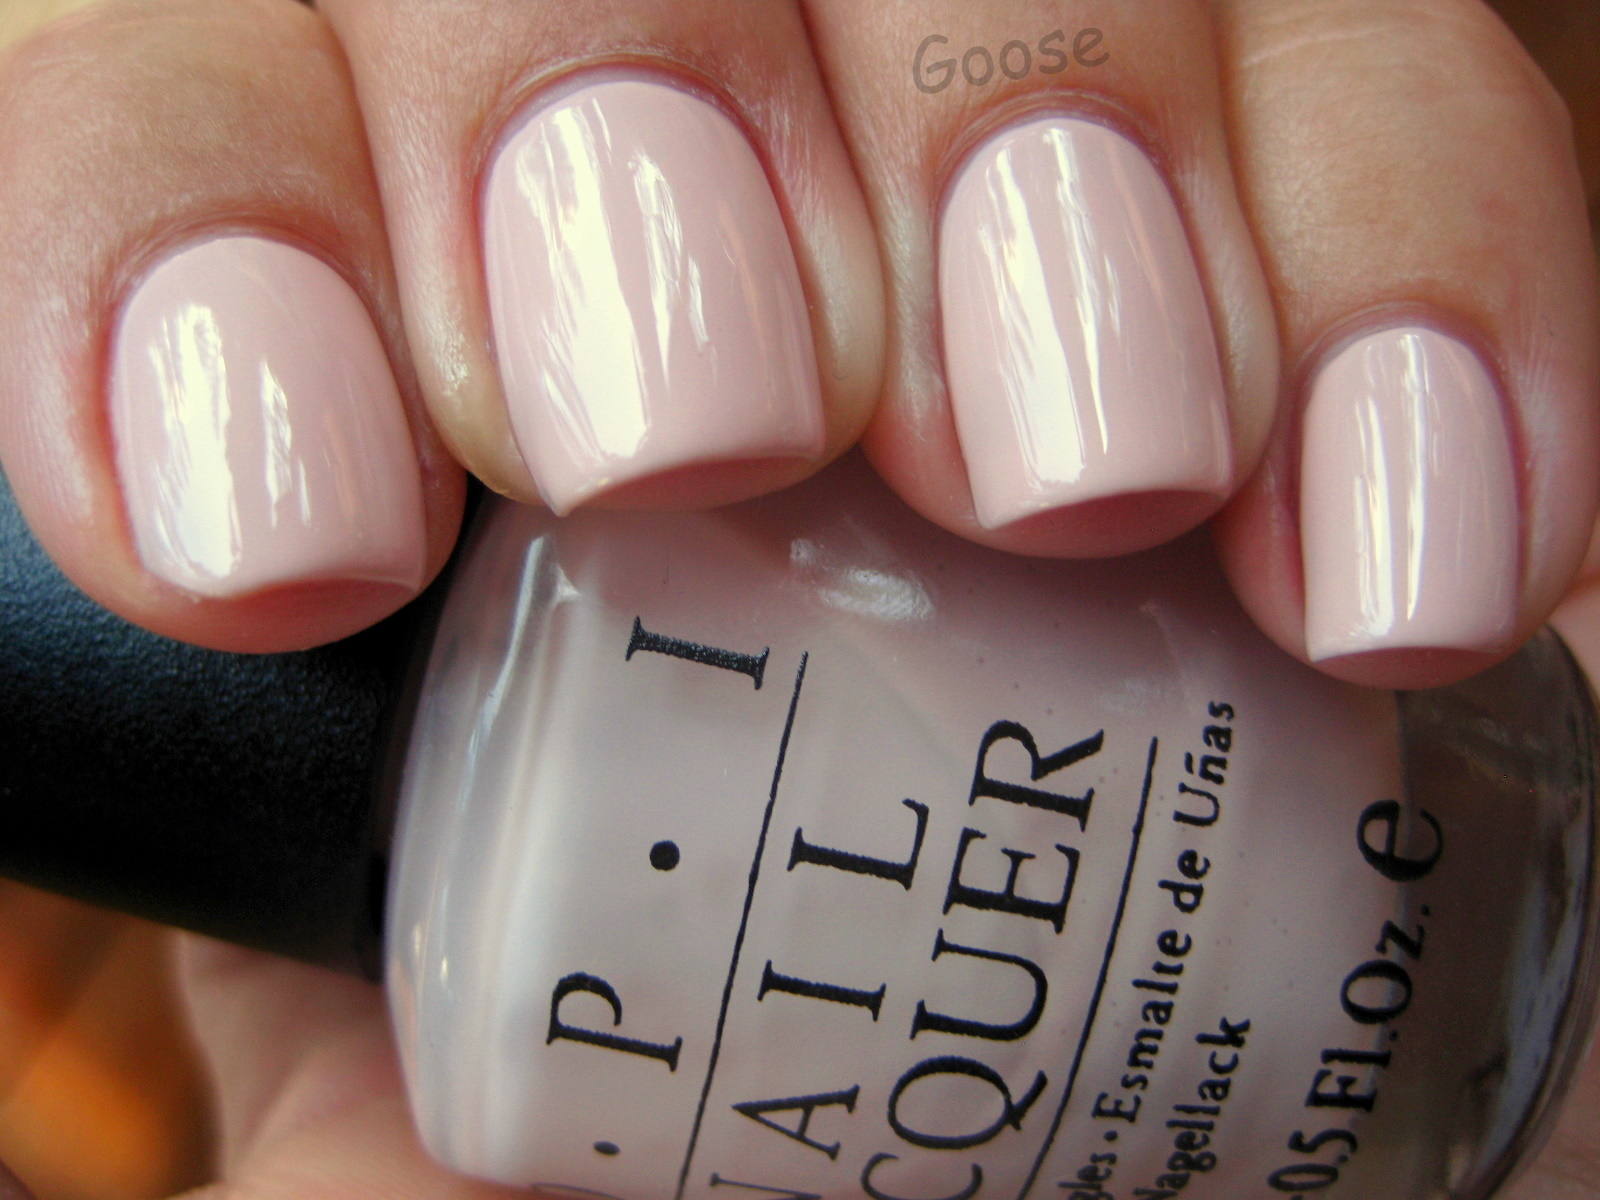 Gooses Glitter OPI Let Them Eat Rice Cake Swatch